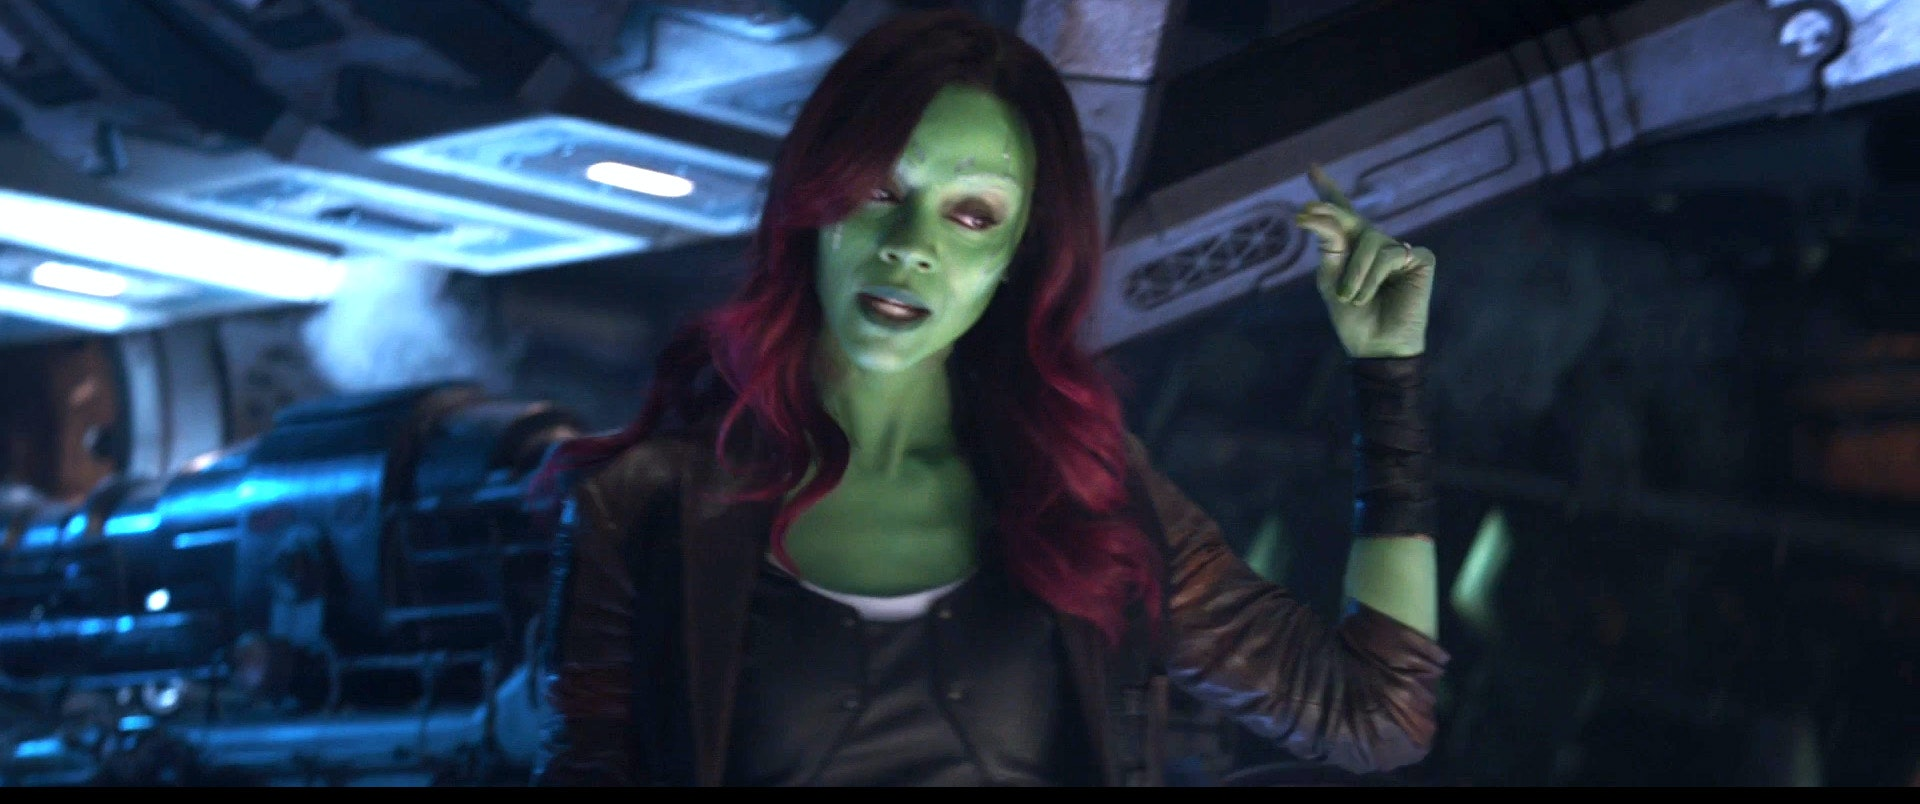 Is Gamora Really Dead? This 'Avengers 4' Theory Has Fans Convinced